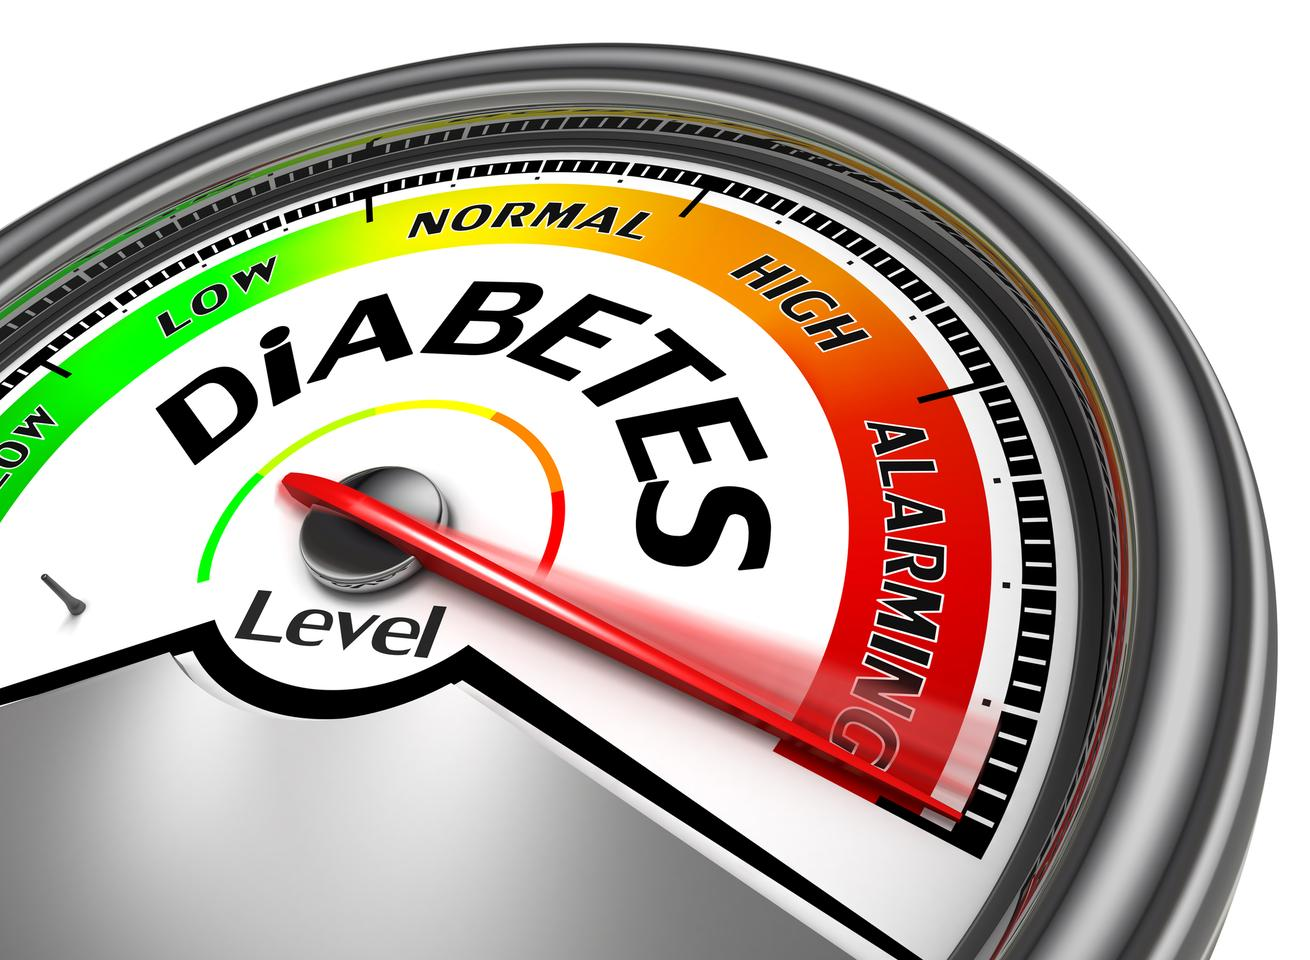 New research offers new ways to identify prediabetes patients most at risk of developing severe disease